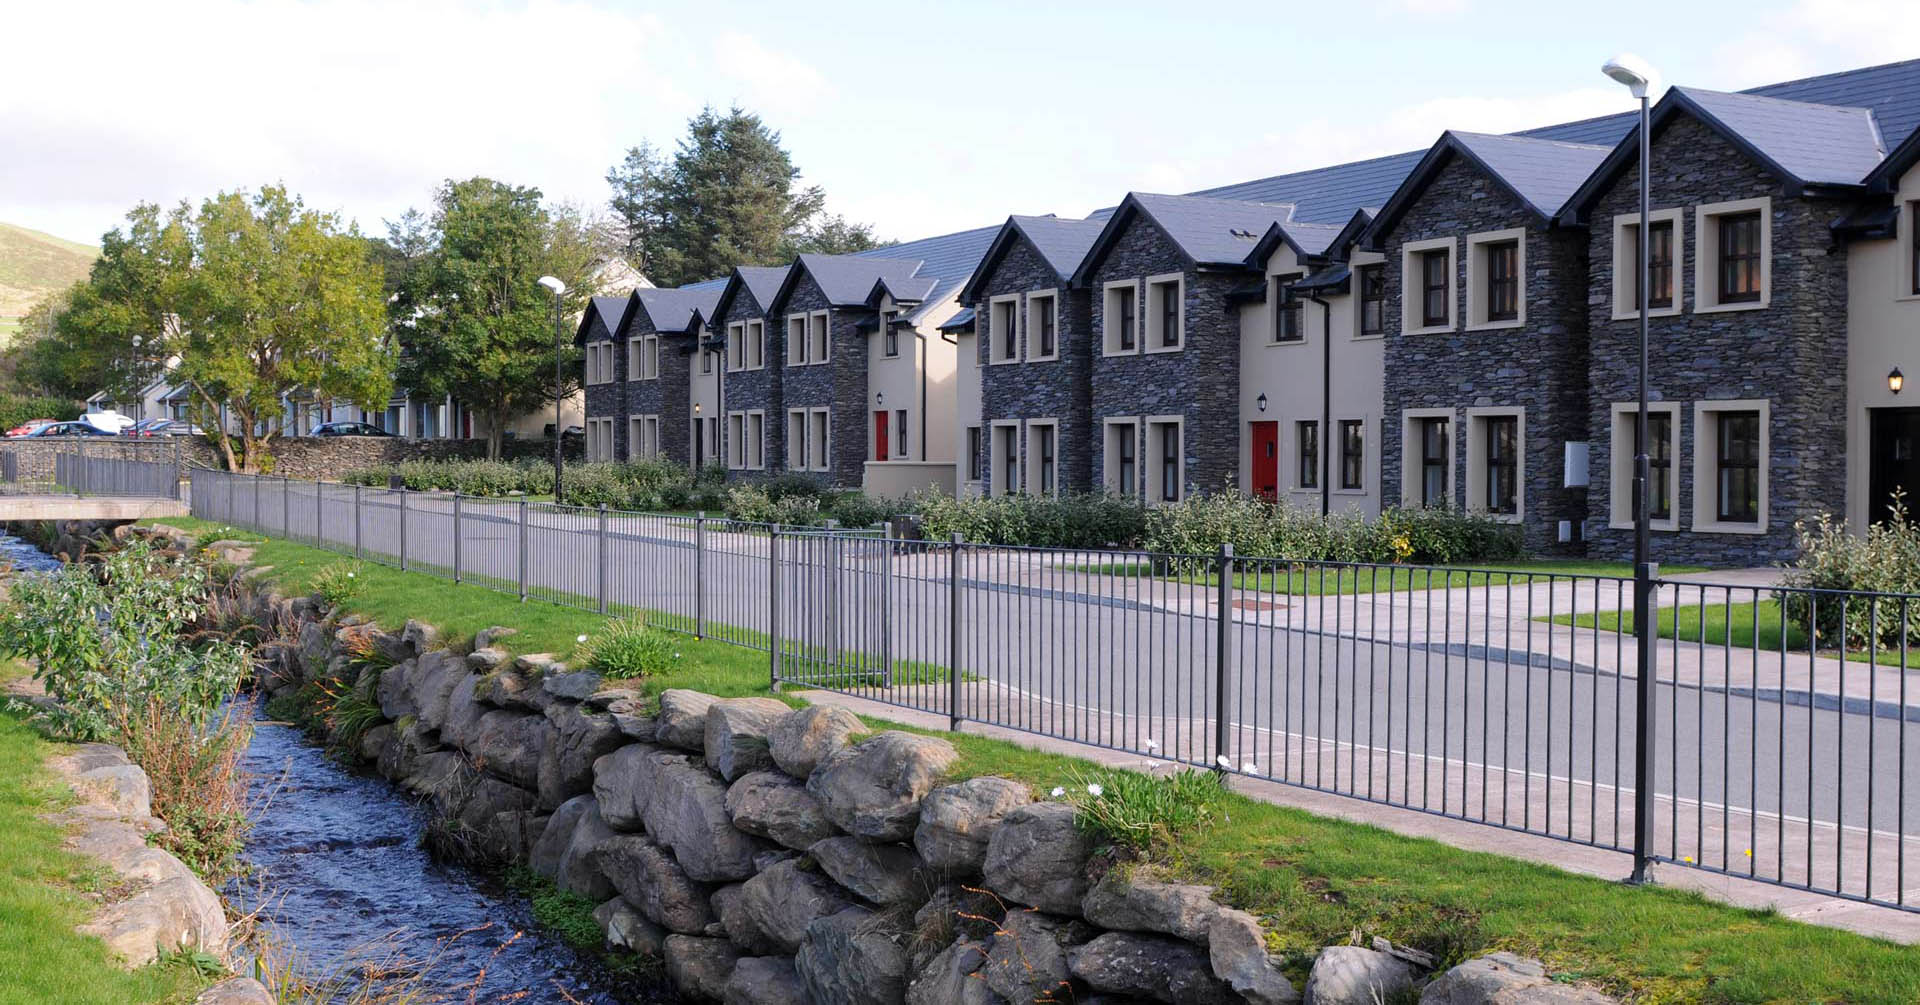 Remarkable Luxury Self Catering Holiday Rentals In Dingle Ireland Download Free Architecture Designs Xaembritishbridgeorg